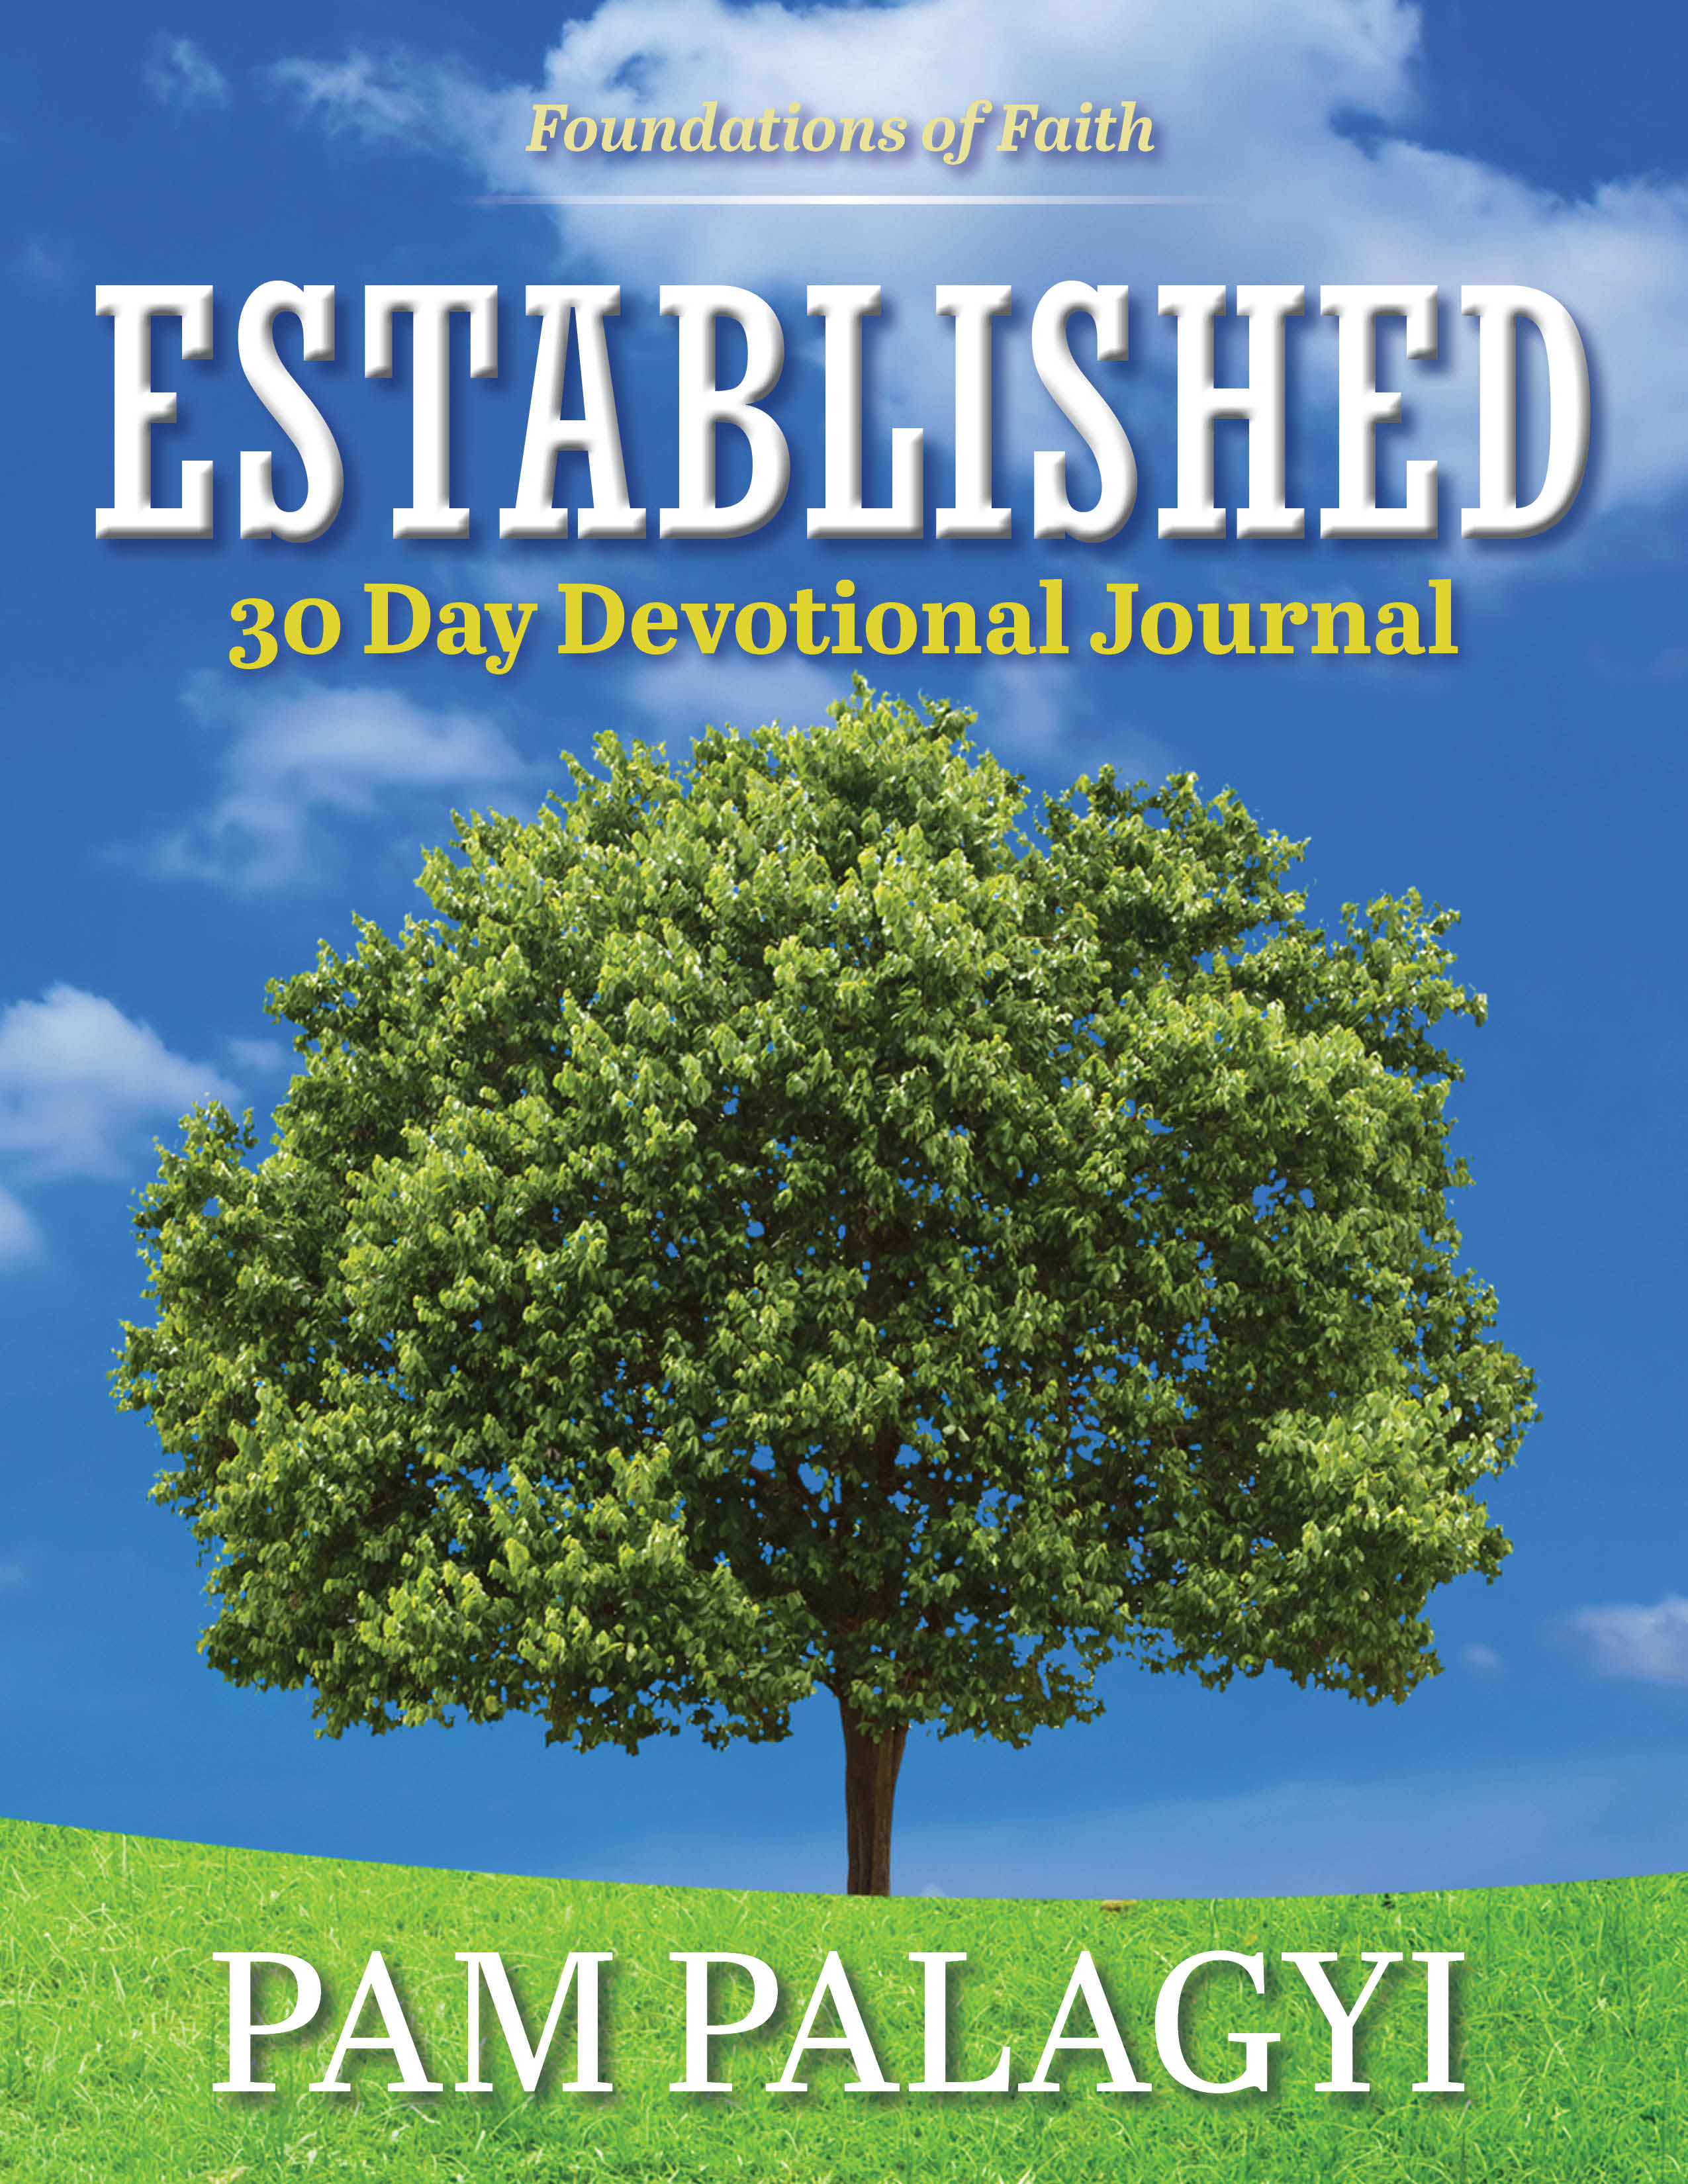 Established: 30 Day Devotional Journal